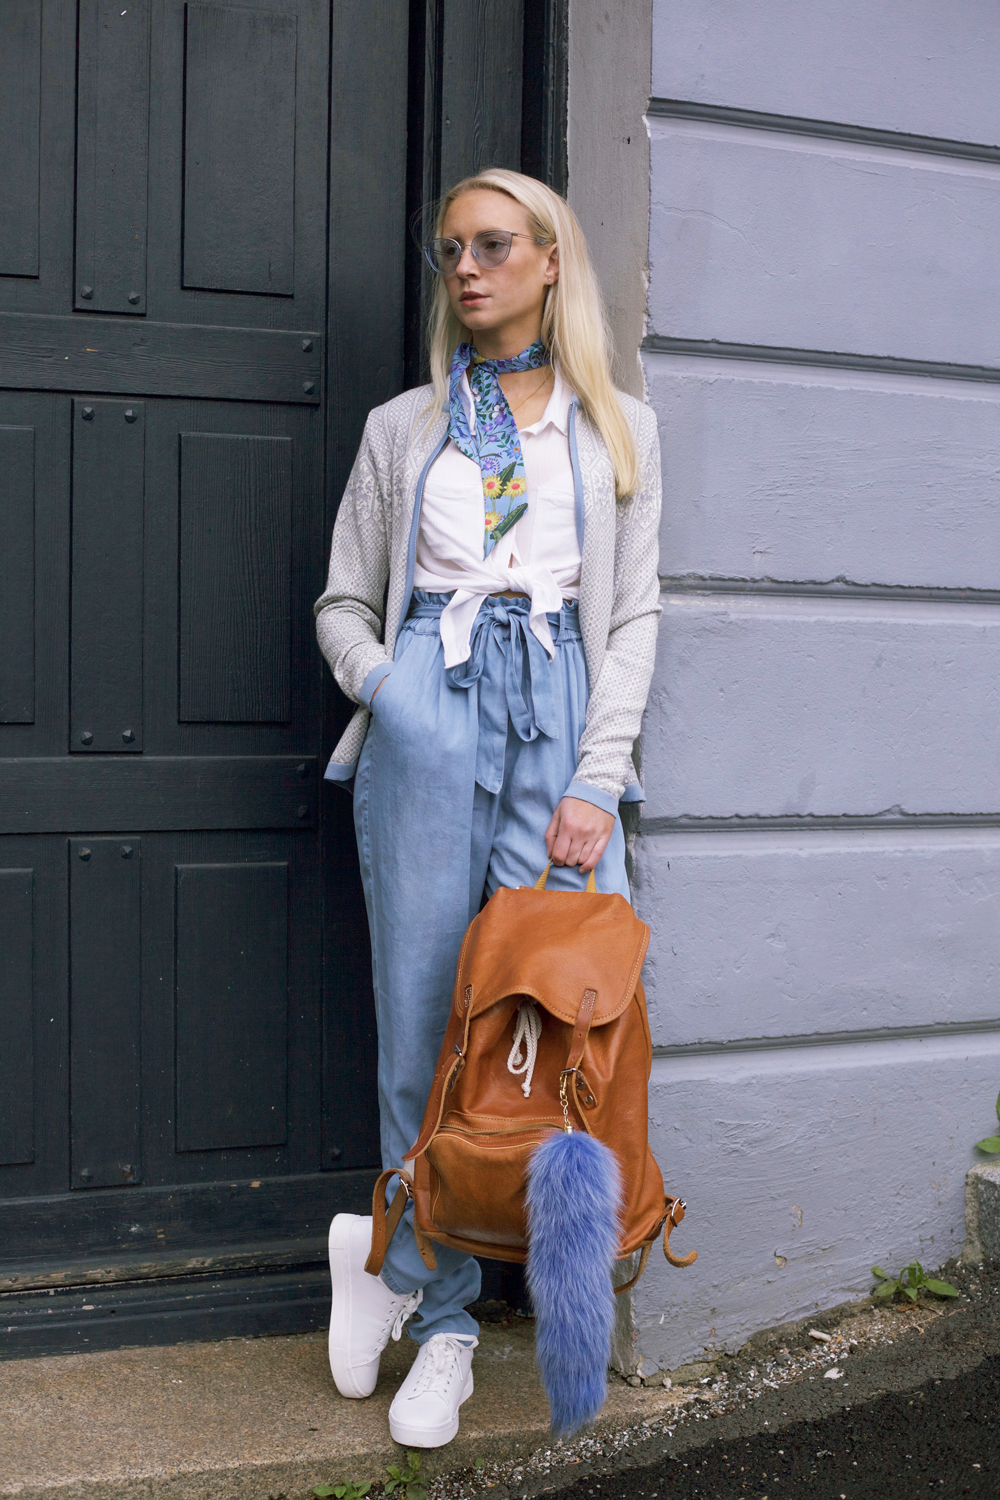 School and Work Outfit & Accessories Shopping Guide